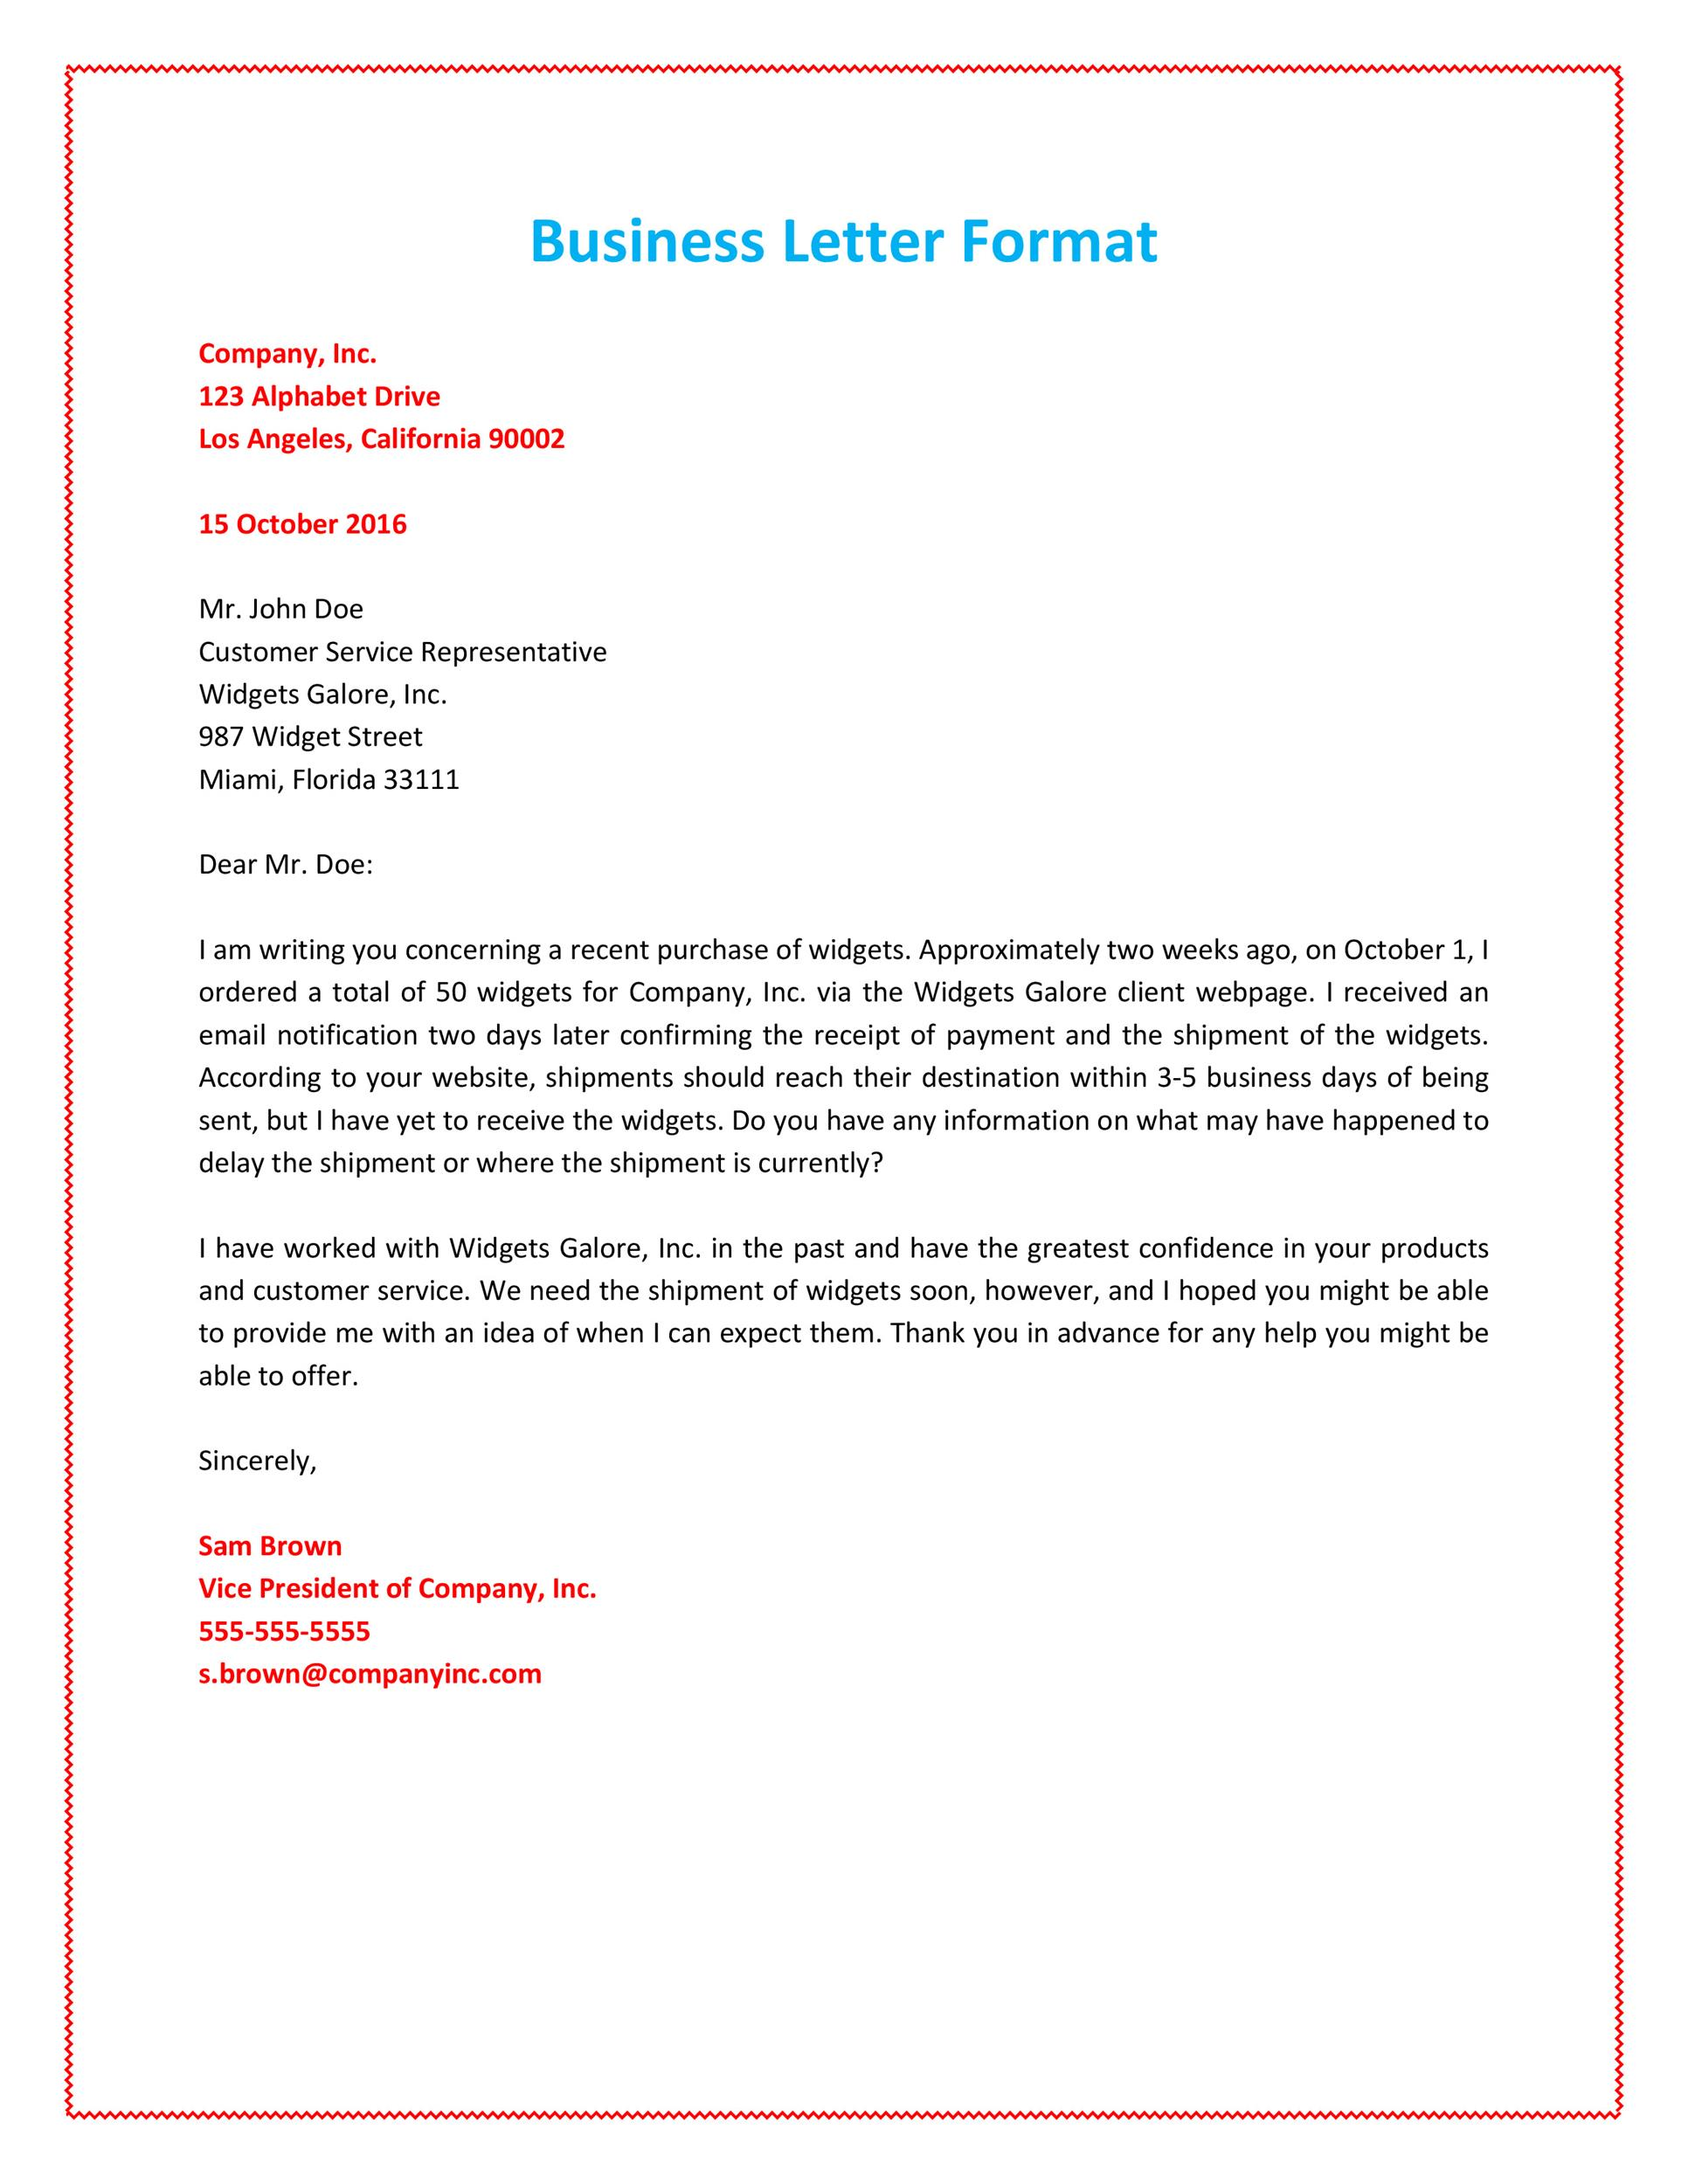 35 formal business letter format templates examples template lab business letter format example spiritdancerdesigns Image collections